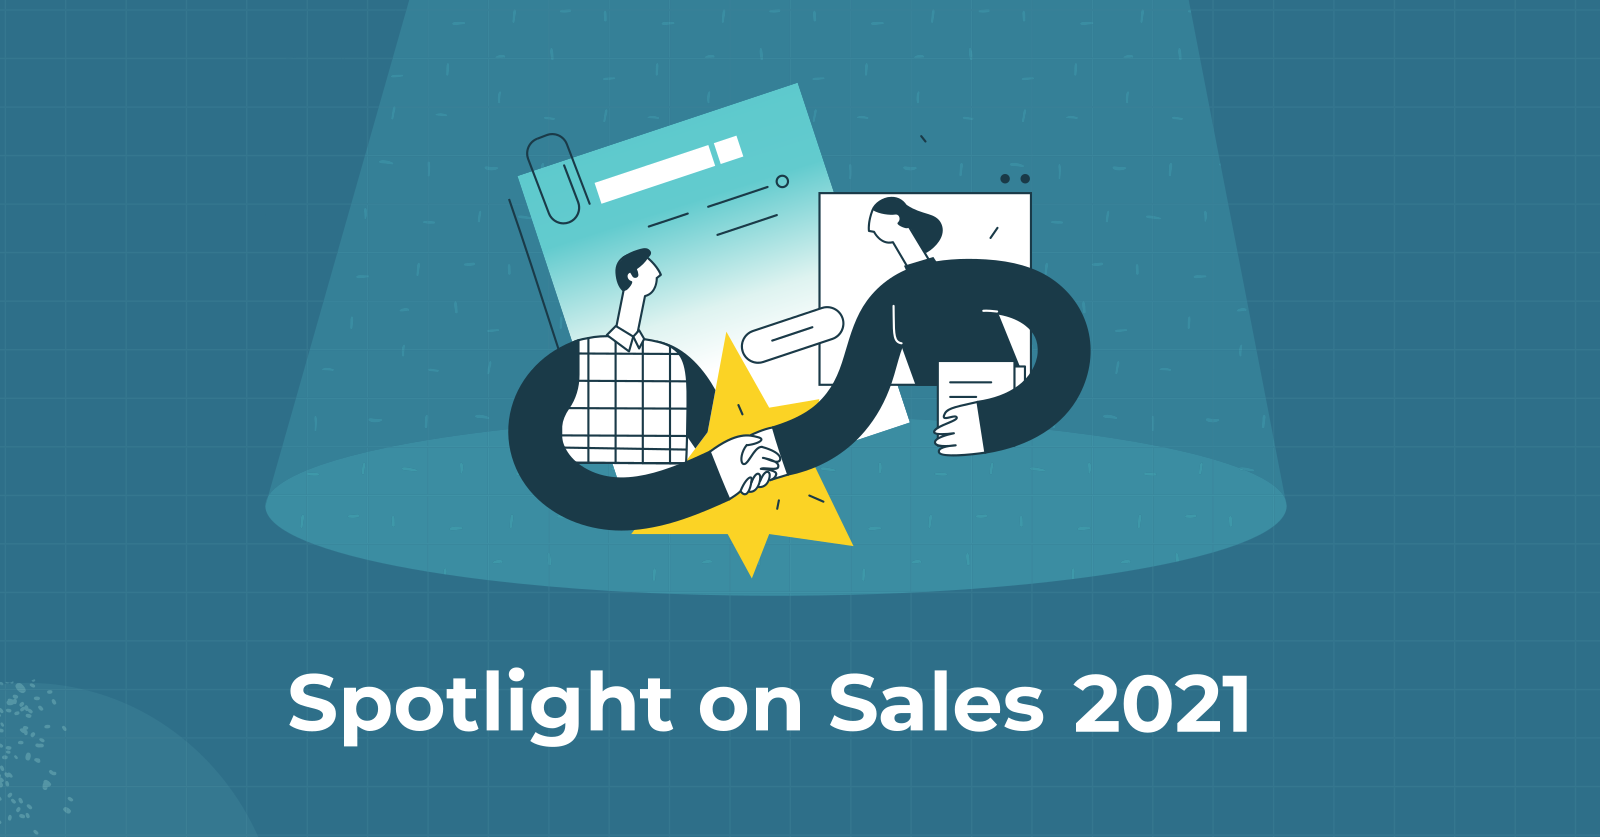 Spotlight on Sales: Nominate Your Heroes